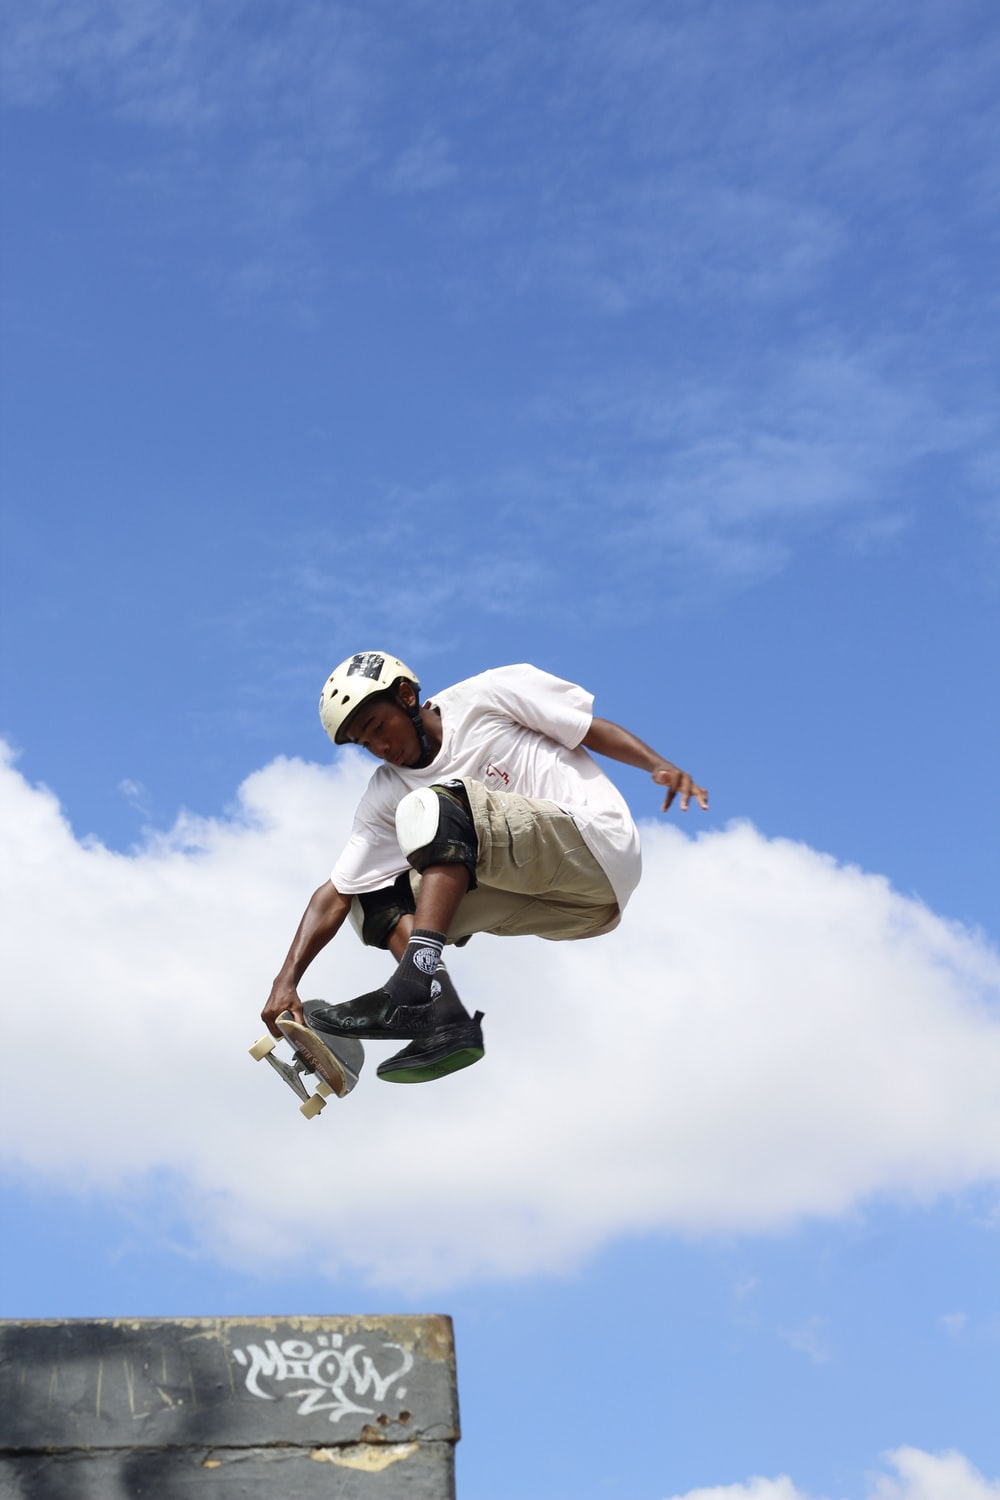 man in white t-shirt and black shorts jumping under blue sky during daytime